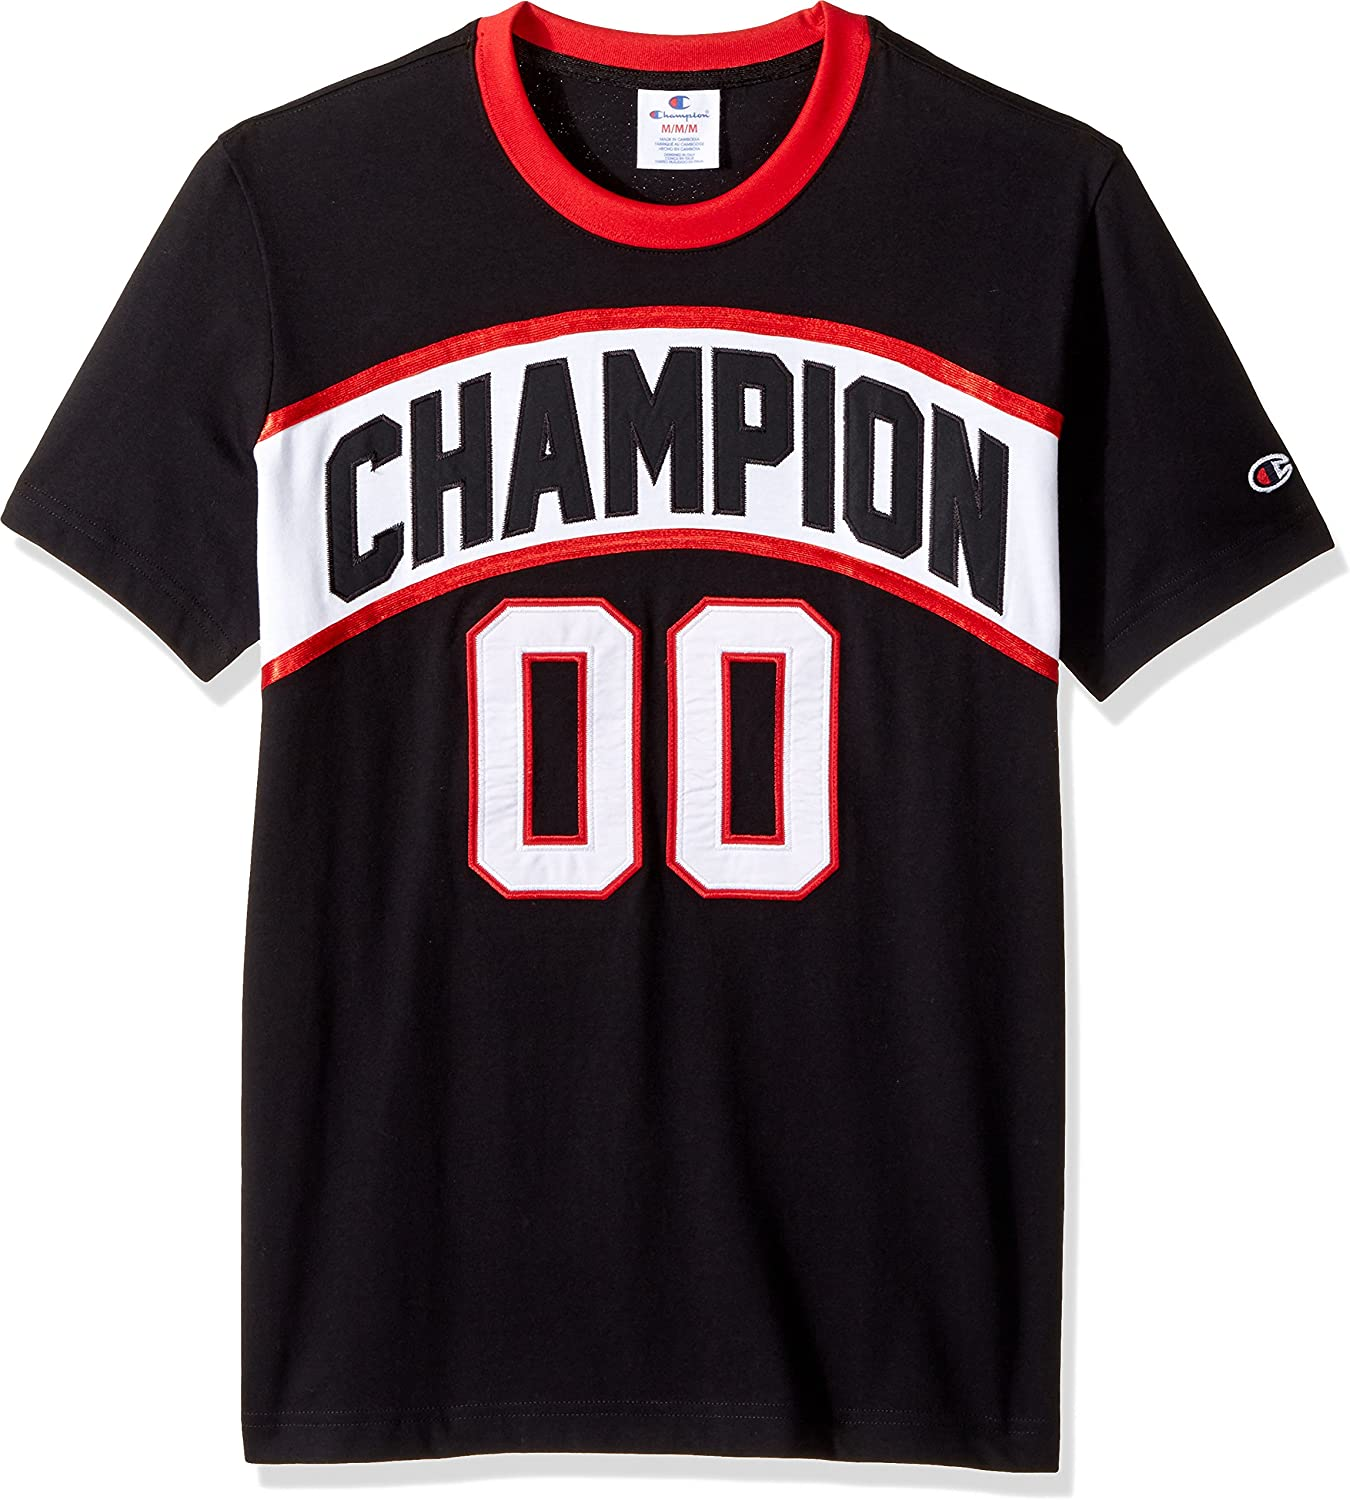 Champion LIFE Mens European Collection Basketball Tee Limited Edition